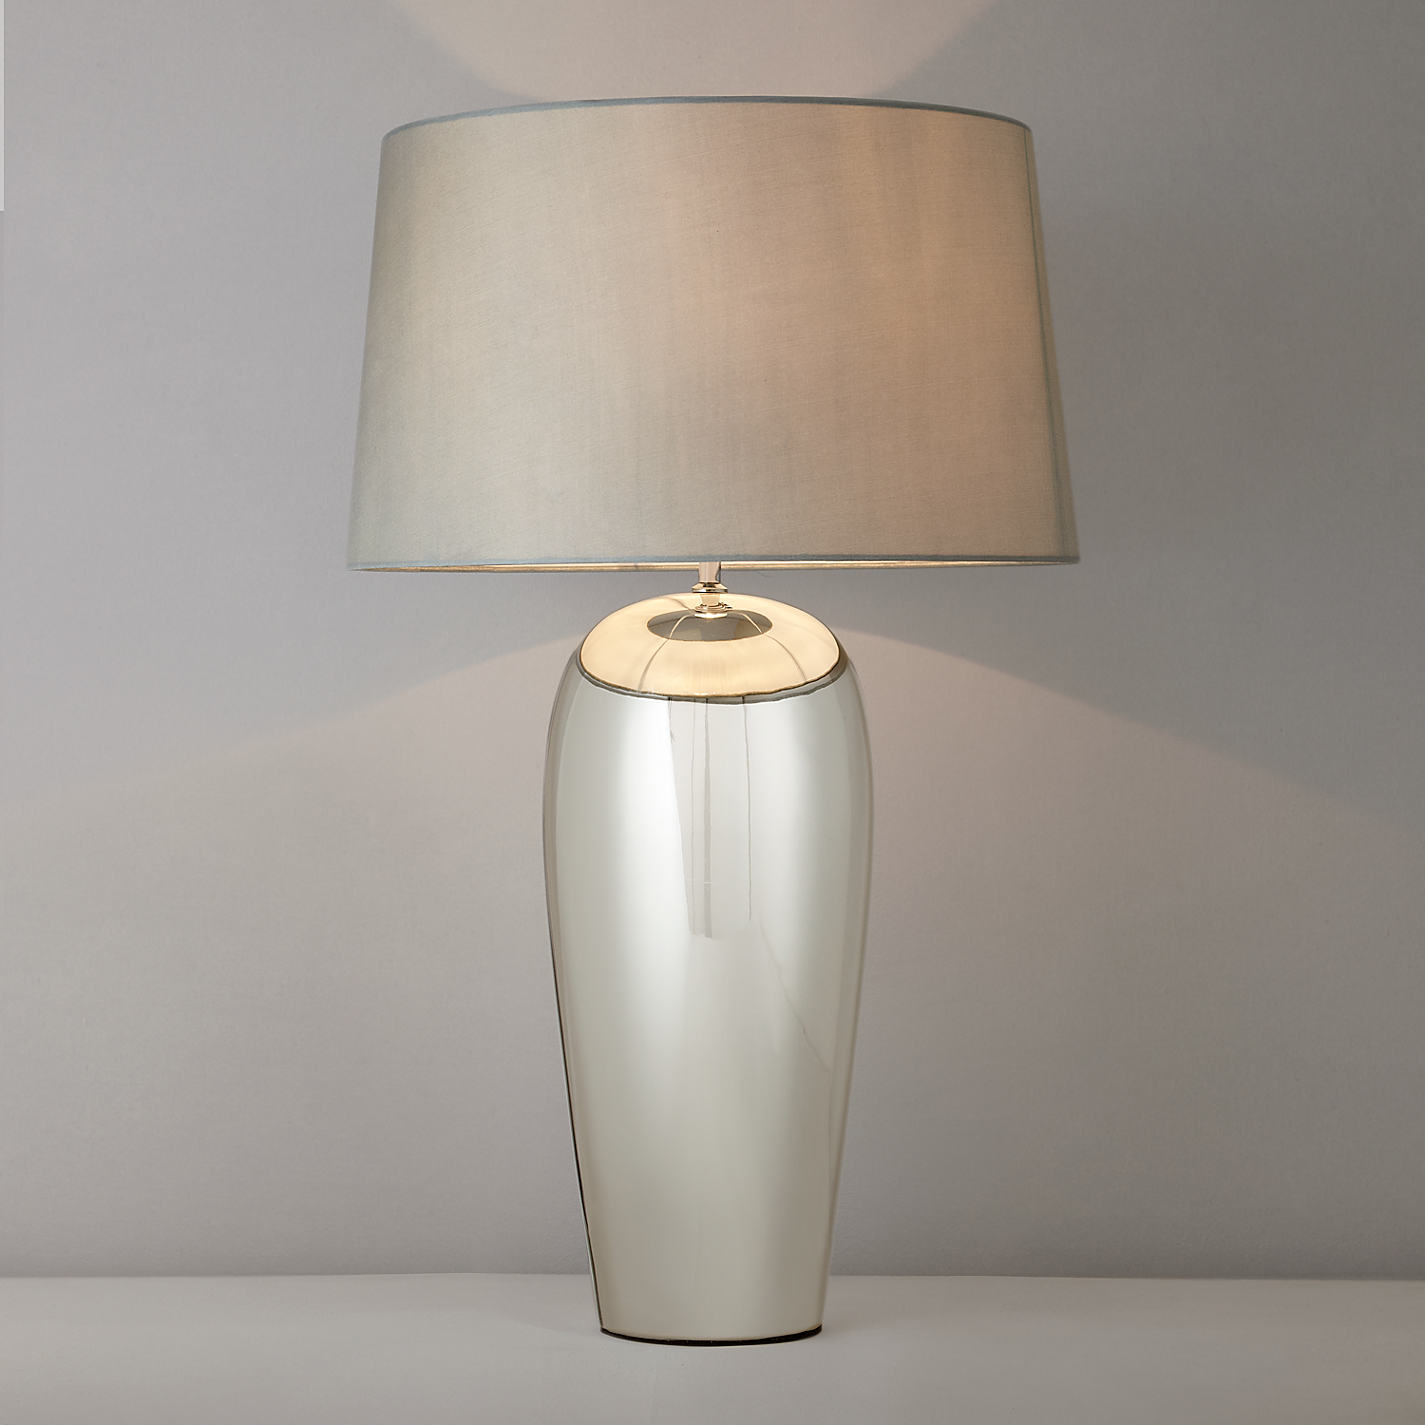 Table lamps at john lewis images coffee table design ideas buy john lewis zachery table lamp john lewis buy john lewis zachery table lamp online at geotapseo Image collections